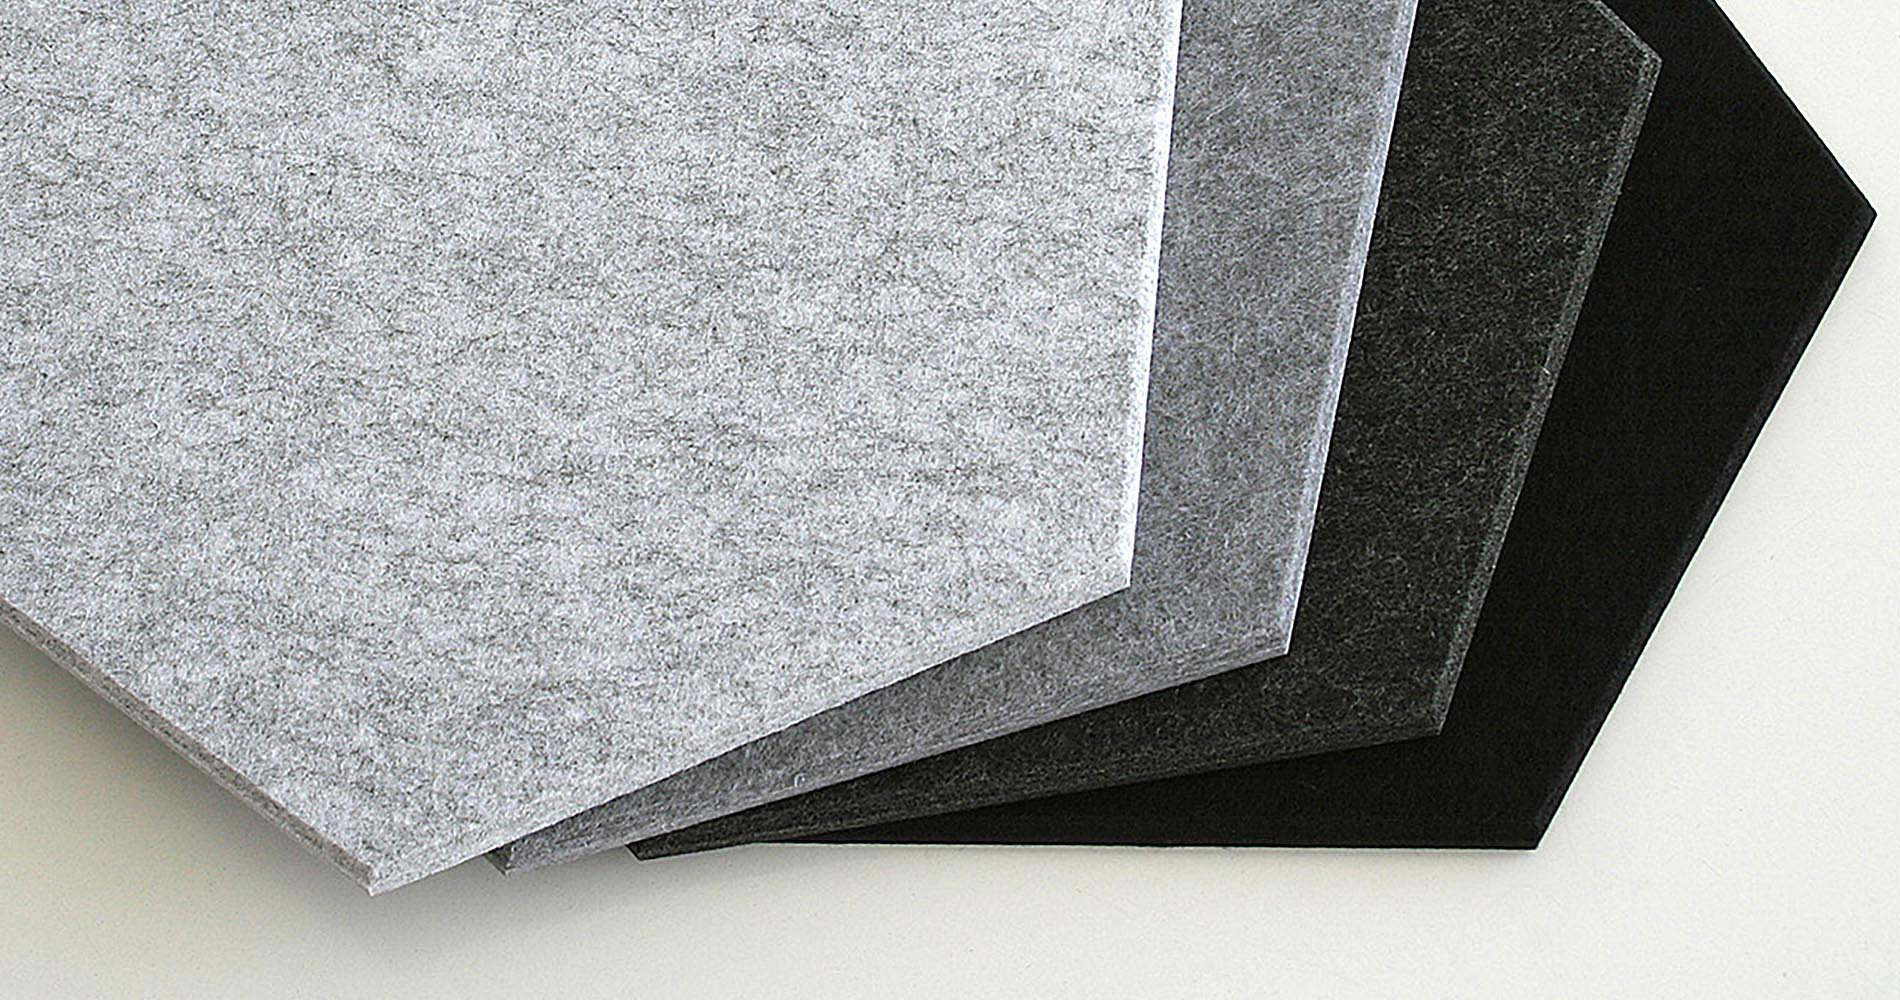 V-cut edges on pinboards